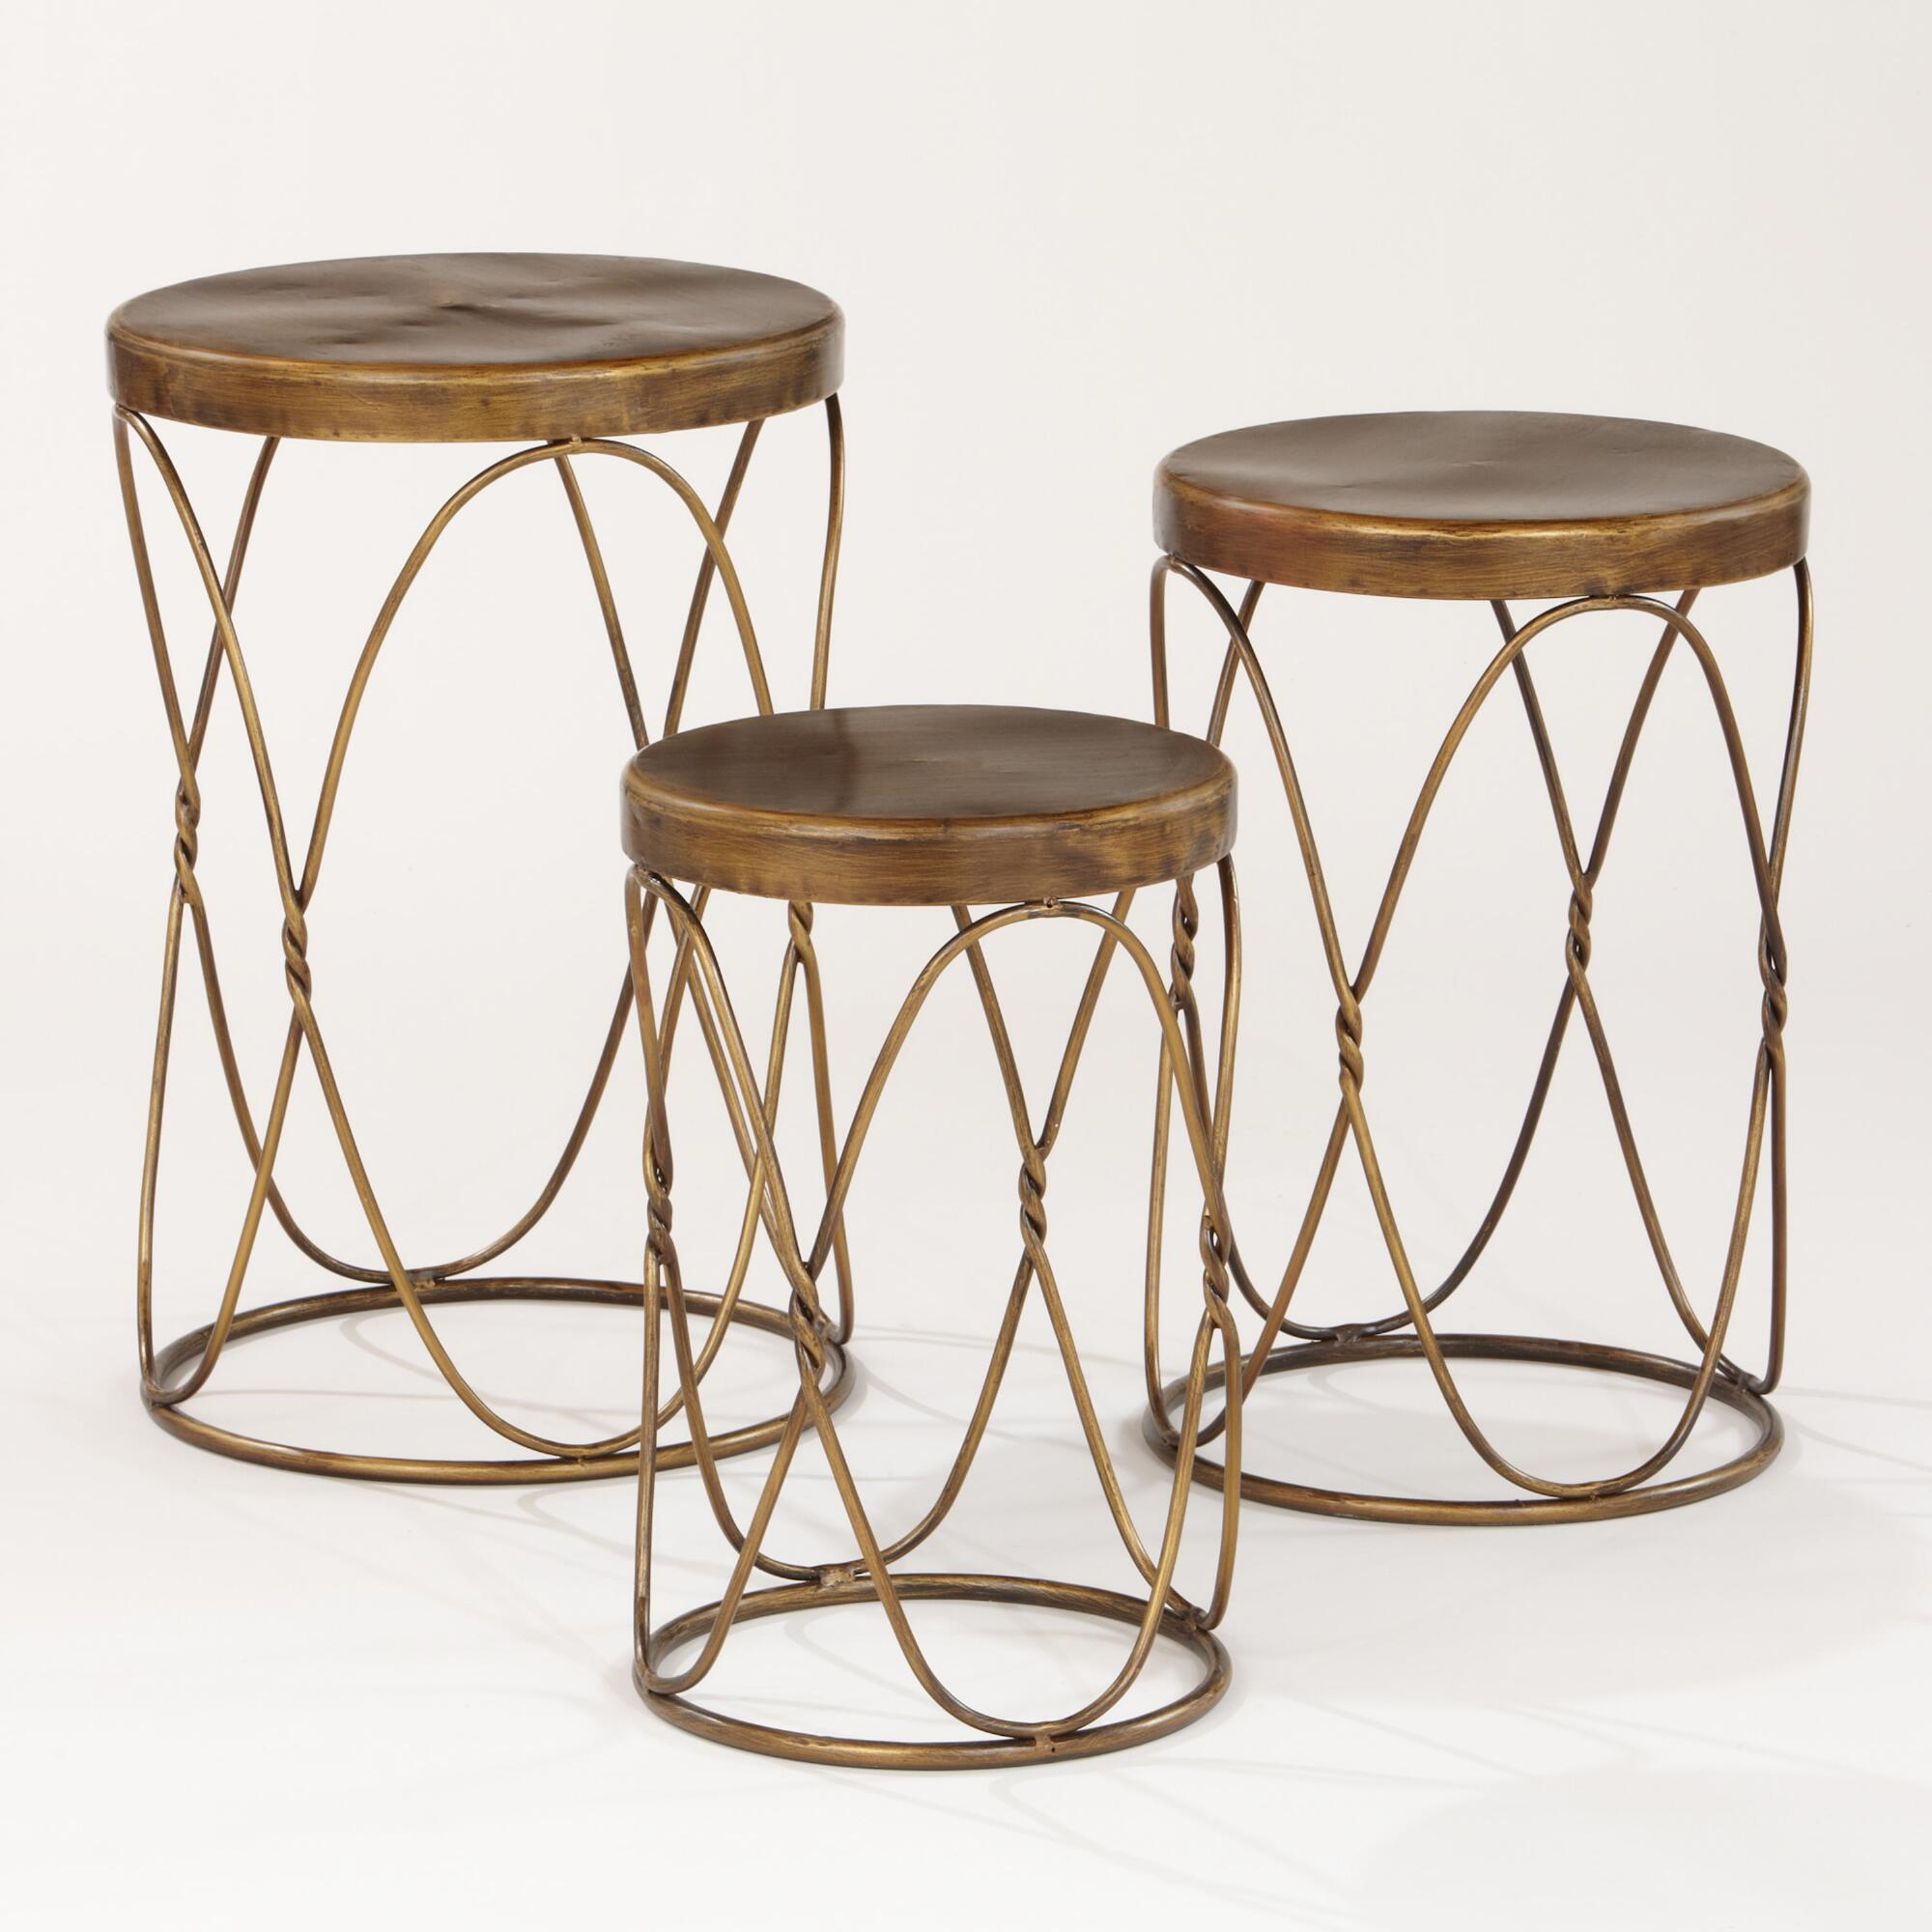 nico nesting tables set world market half moon accent table knurl metal accents for furniture door designs rooms blue stained glass lamp industrial chic mid century modern sofa